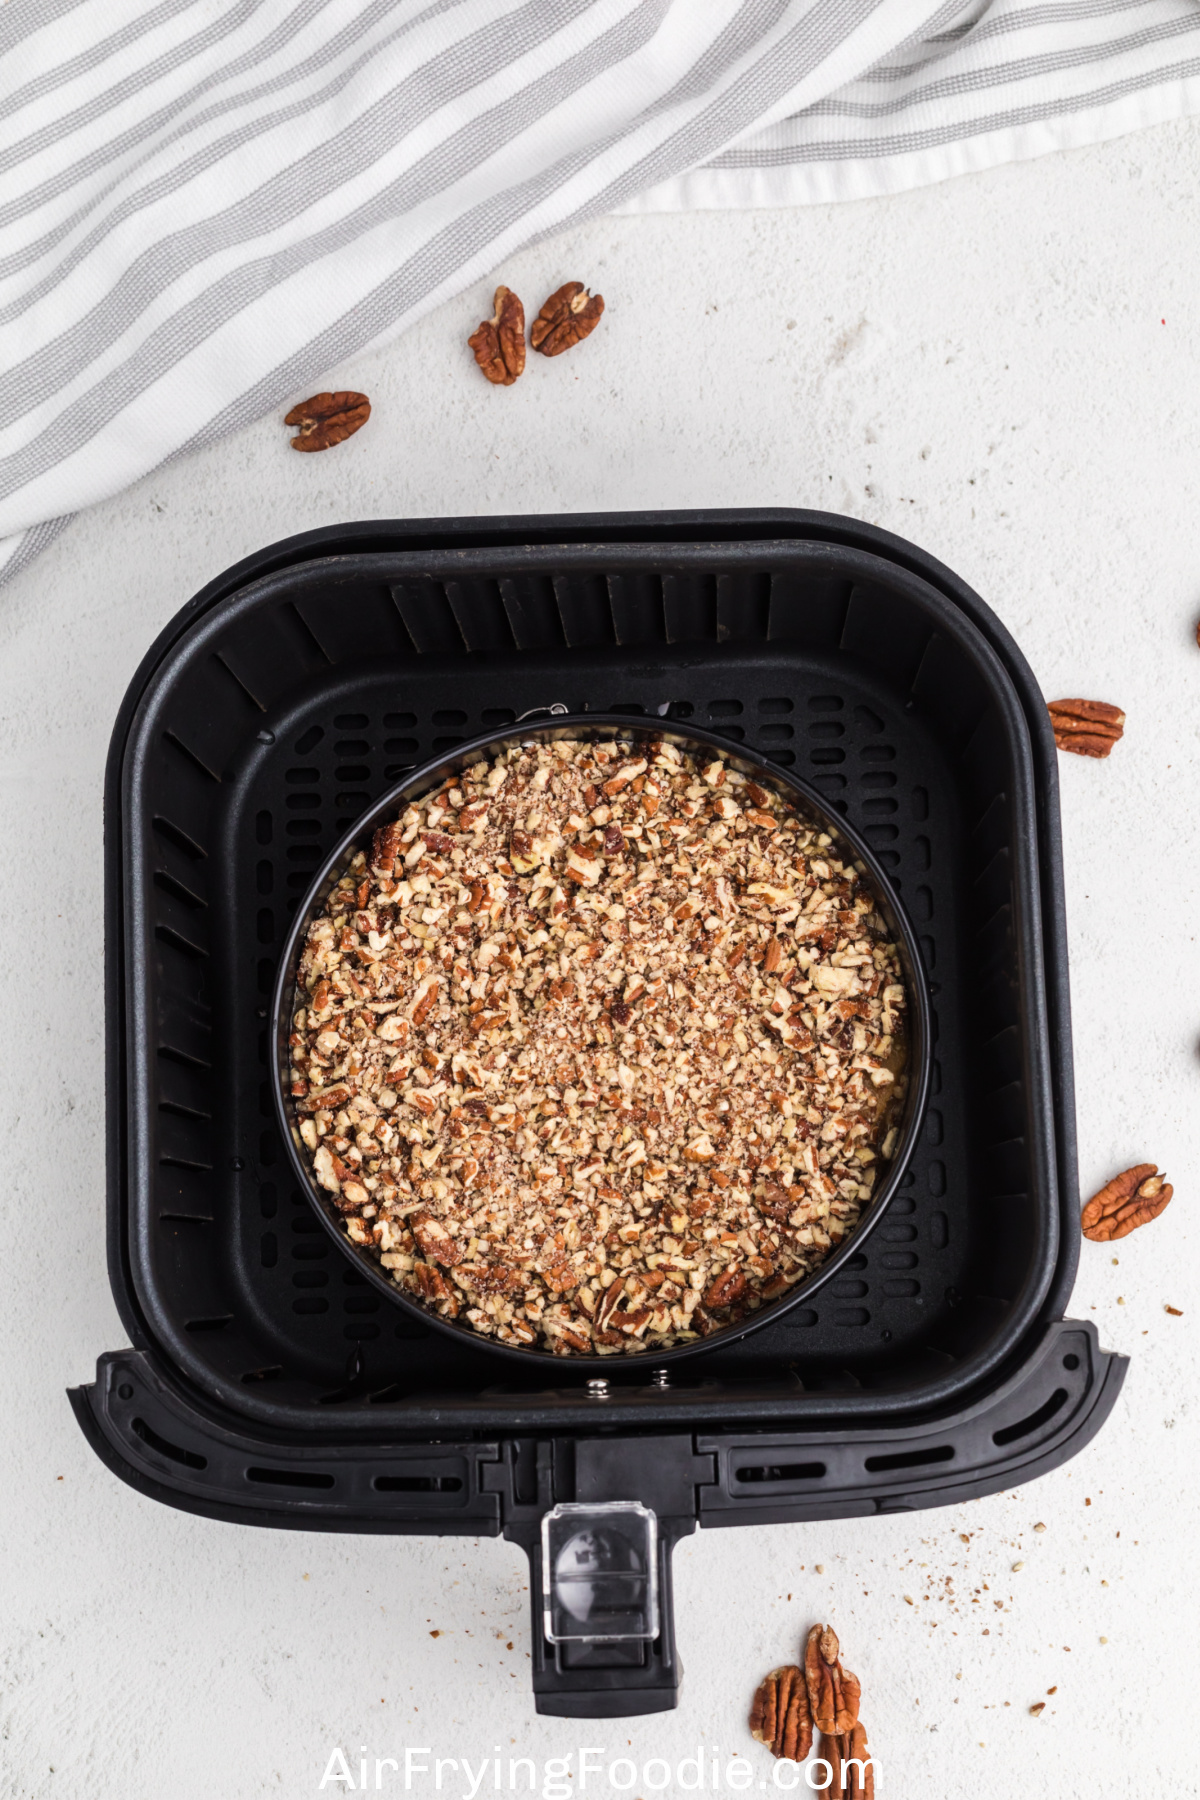 sweet potato casserole in the basket of the air fryer, ready to cook.